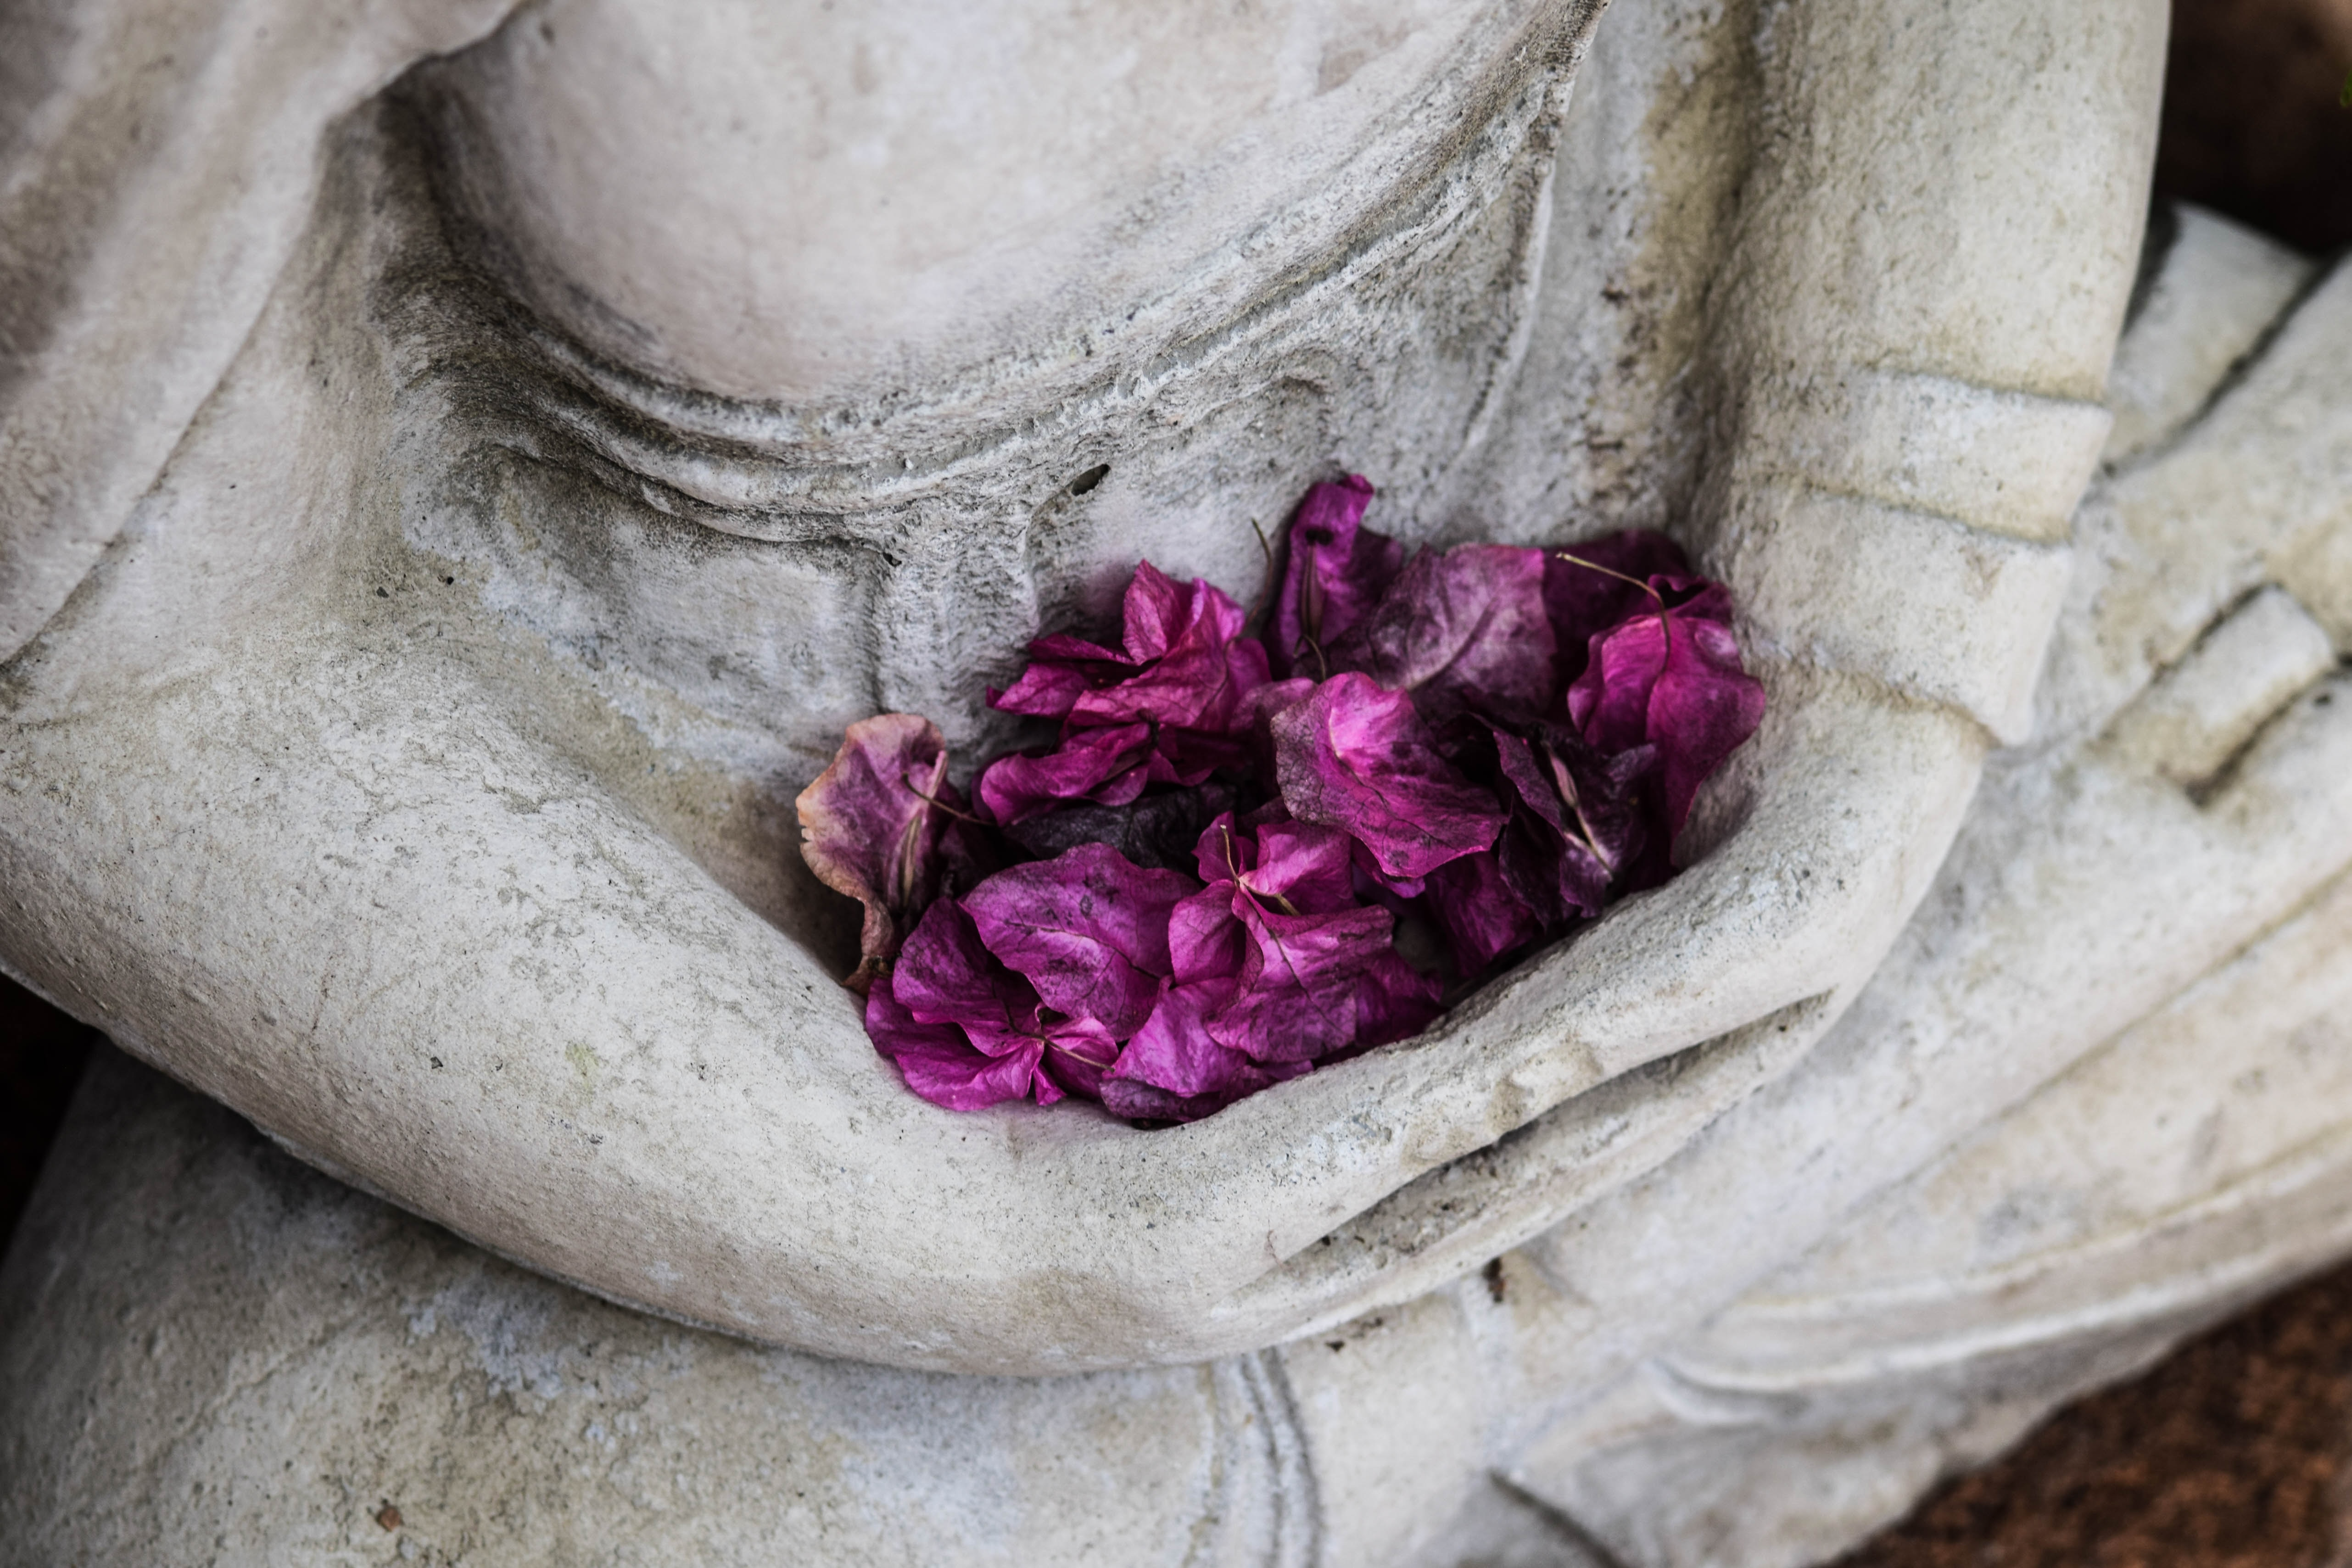 Image of statue holding rose petals